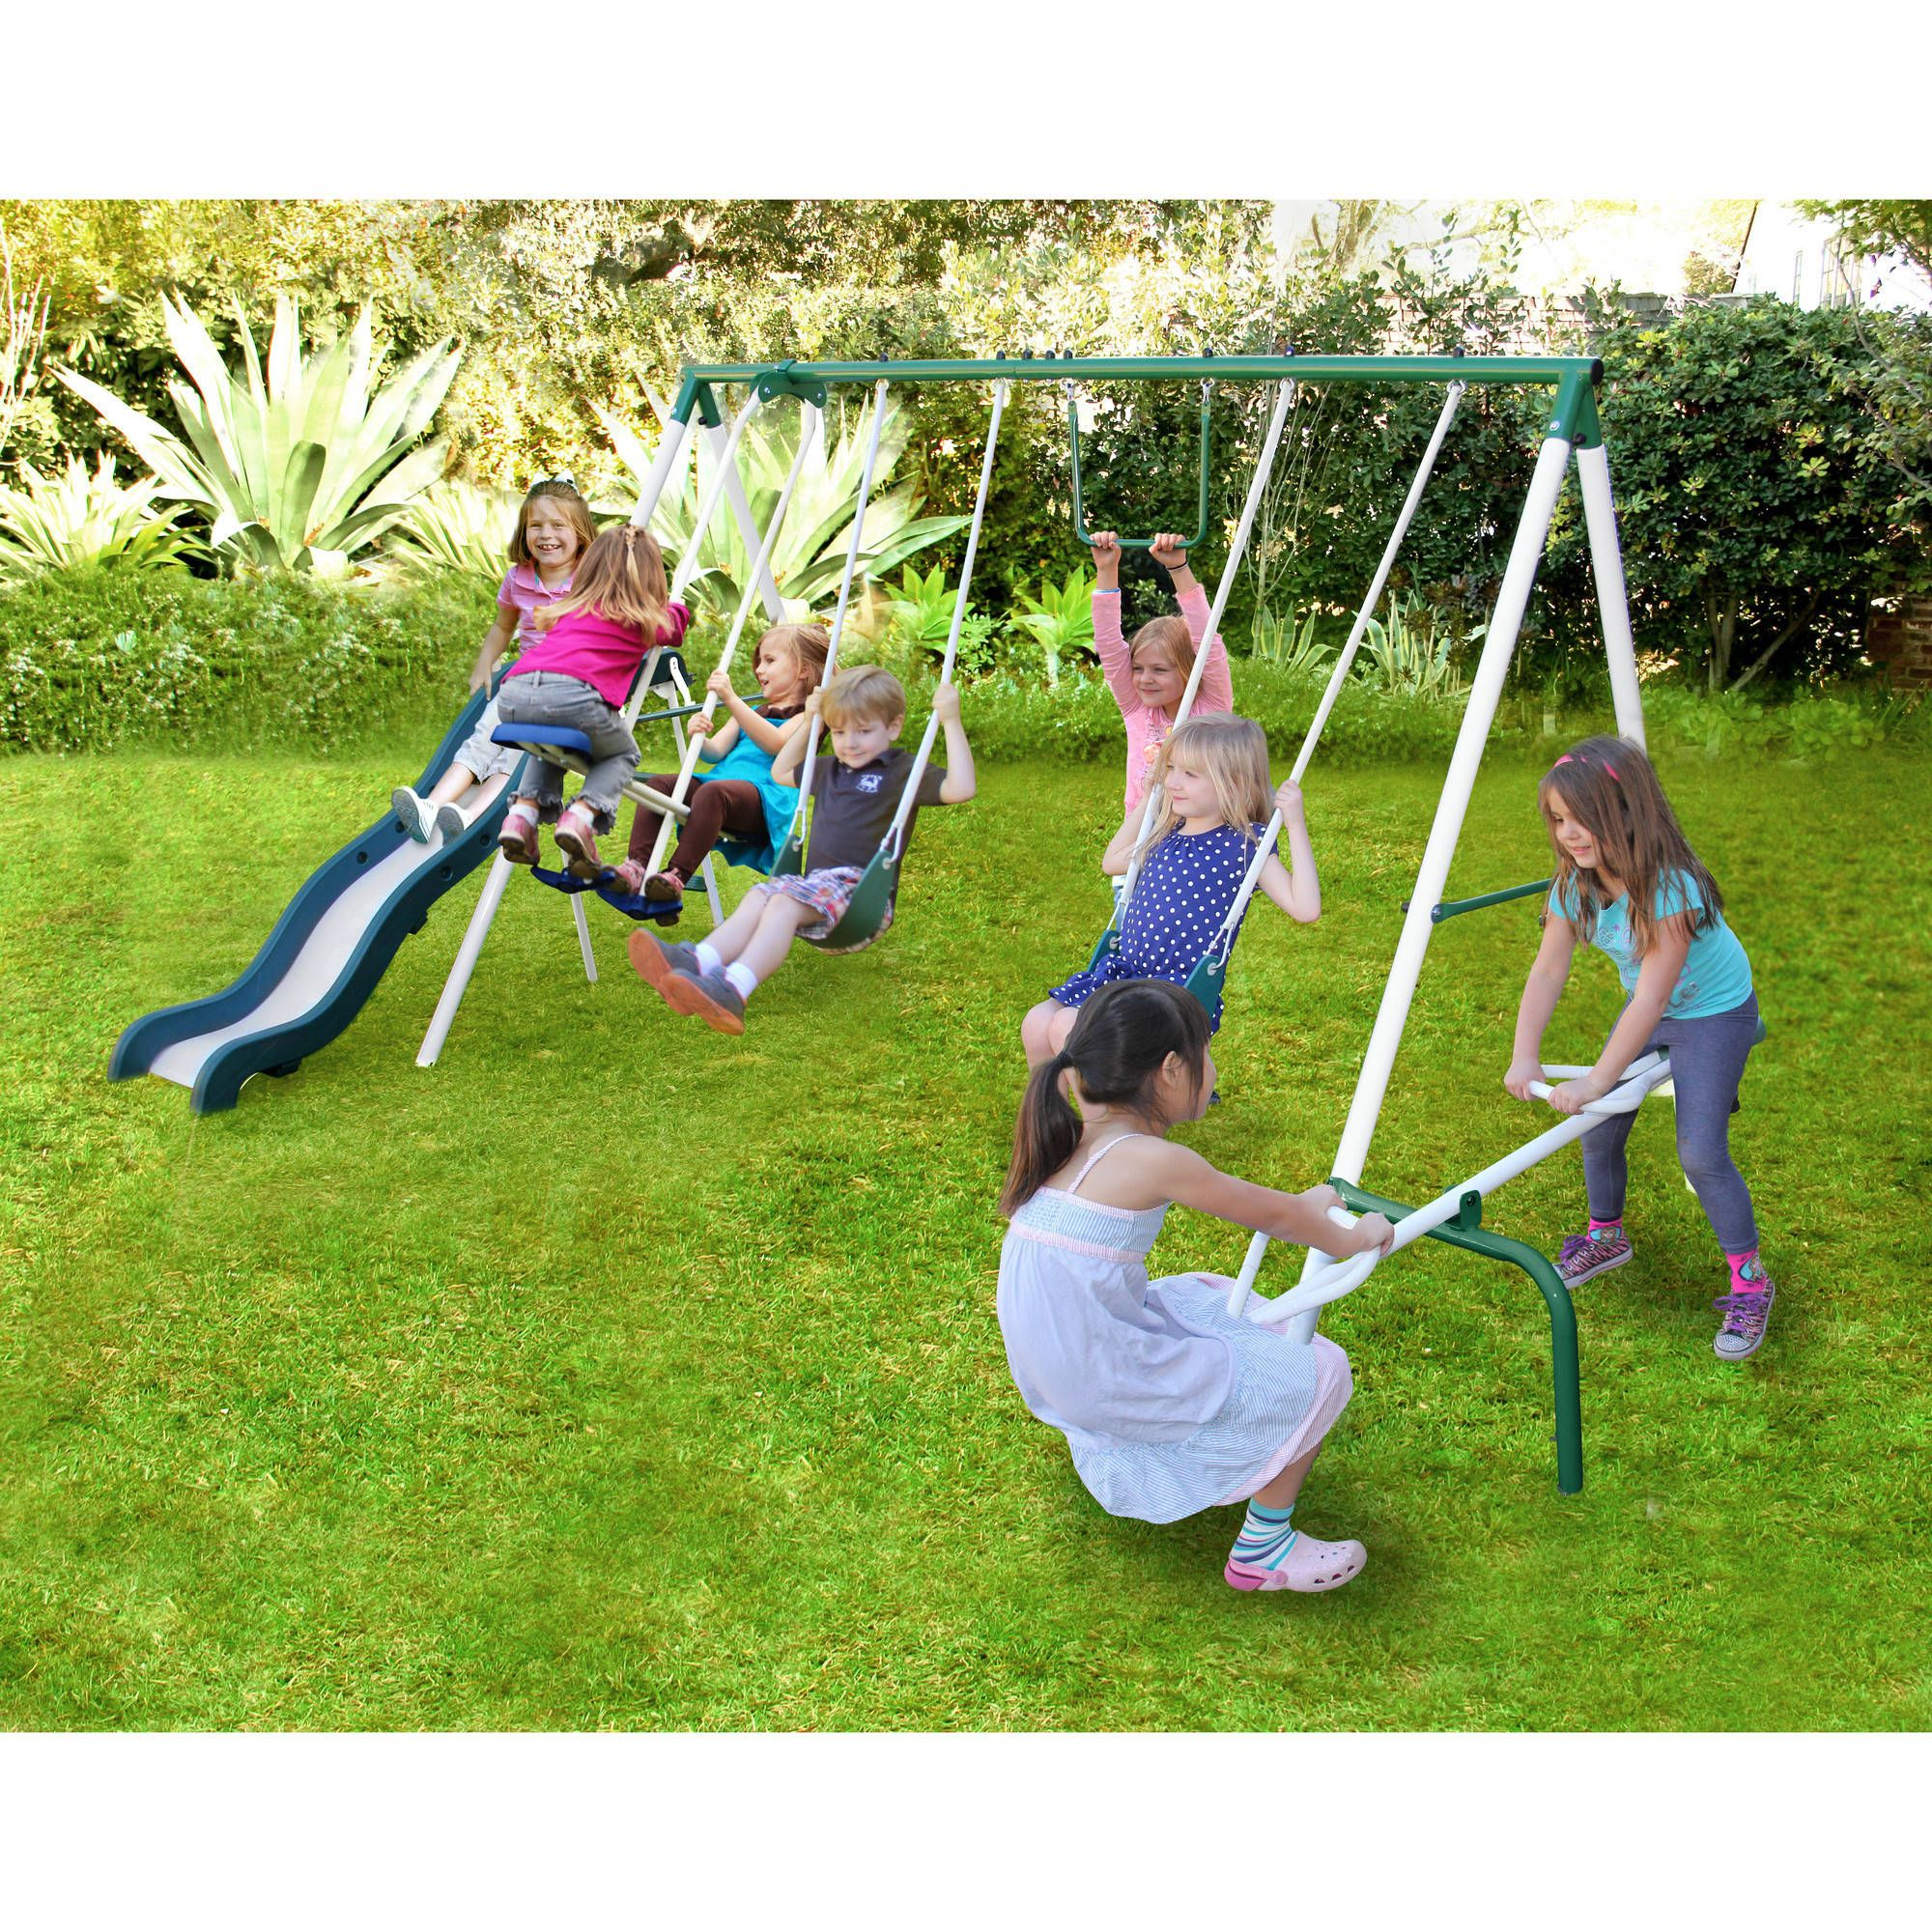 wooden malibu glider outdoor set ah costco peak ideas pioneer sweet kids sets playsets swing backyard grande and playground walmart formidable diy gorilla sams club metal playset